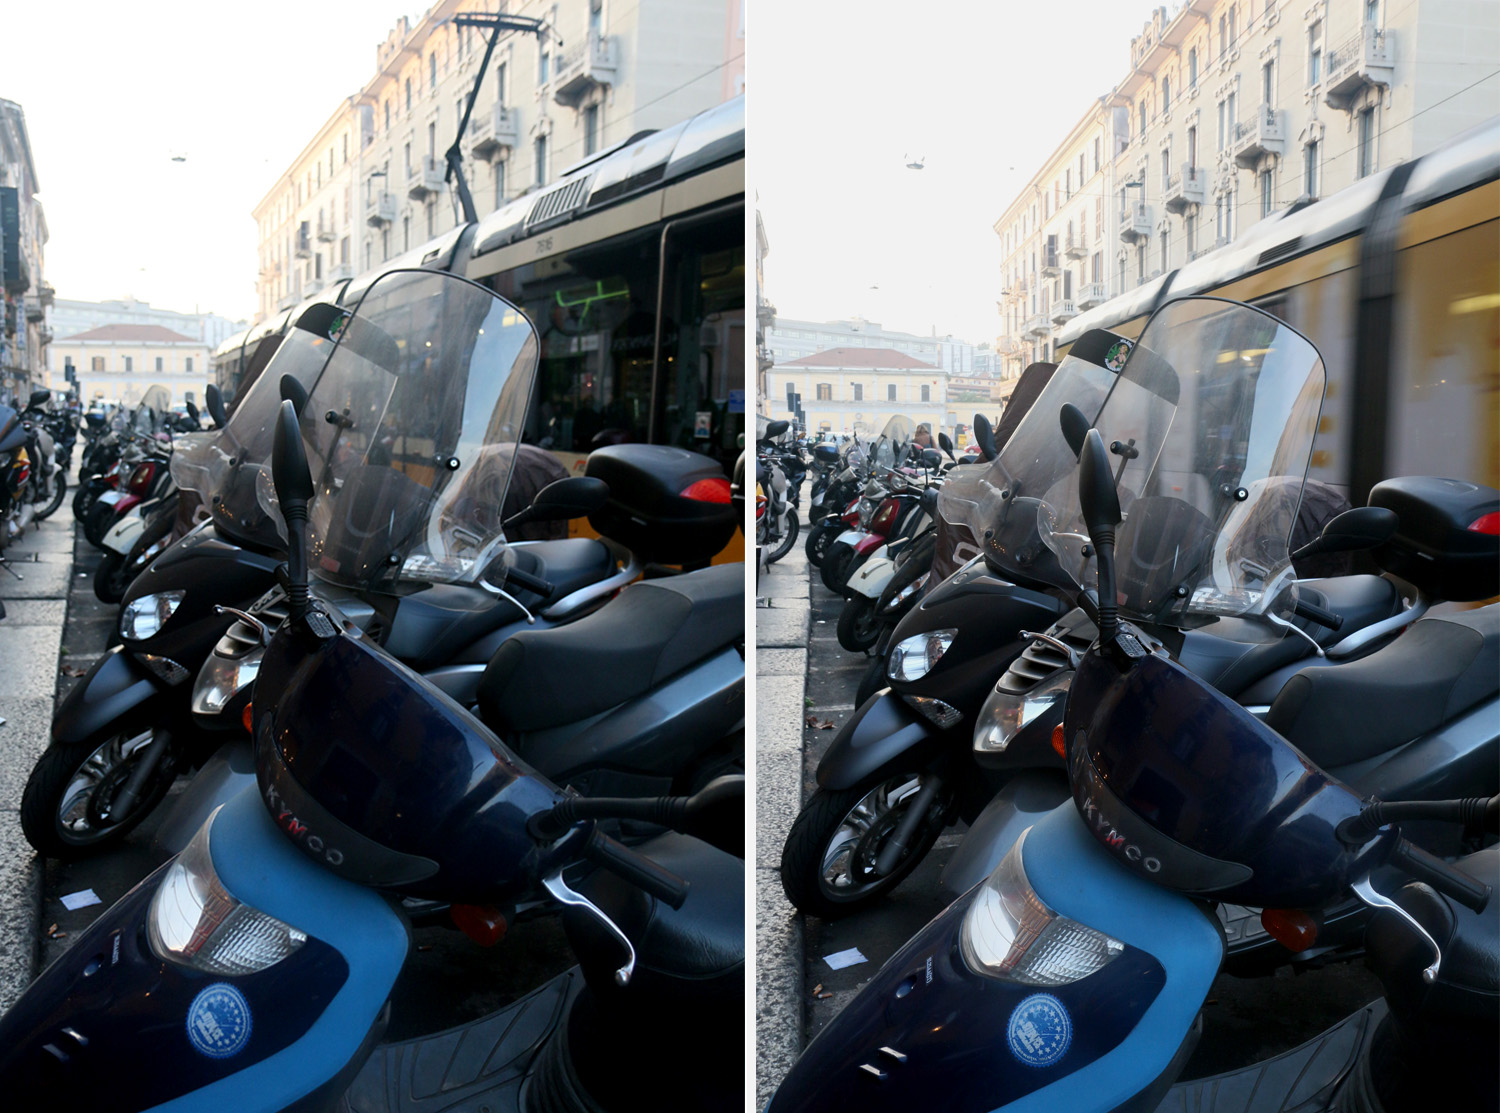 Image: Left image – SHUTTER PRIORITY:1/250, f/3.5, ISO 800 = Freeze Subject. Right image...